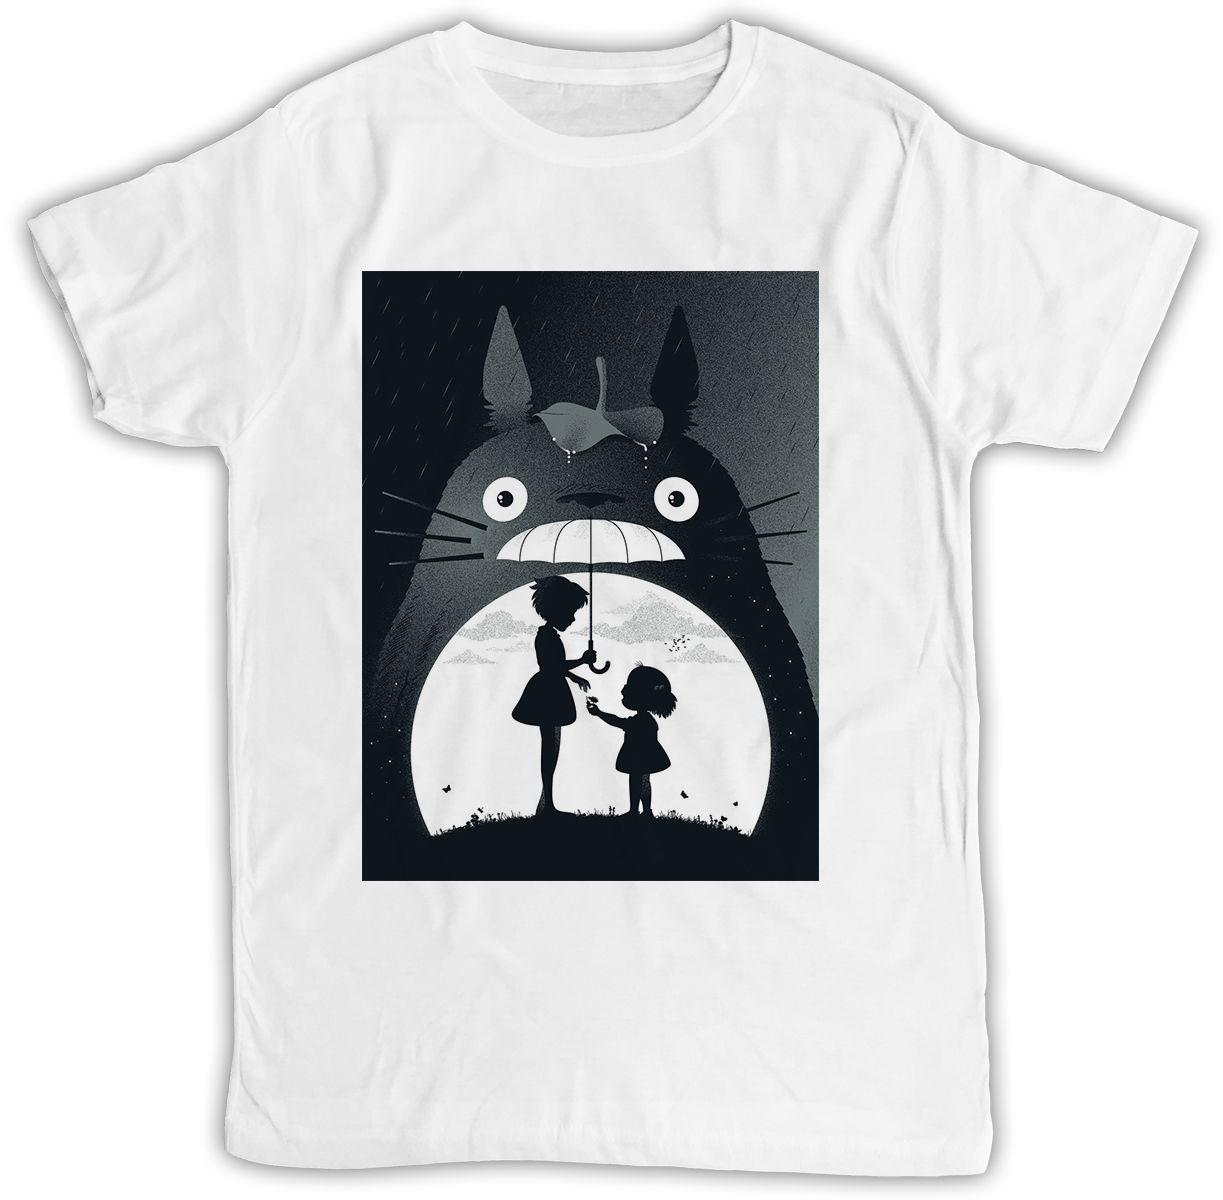 My Neighbor Totoro Poster Ideal Gift Birthday Present Cool Retro Funny T Shirt Shirts Designs Best Selling Men Shop For